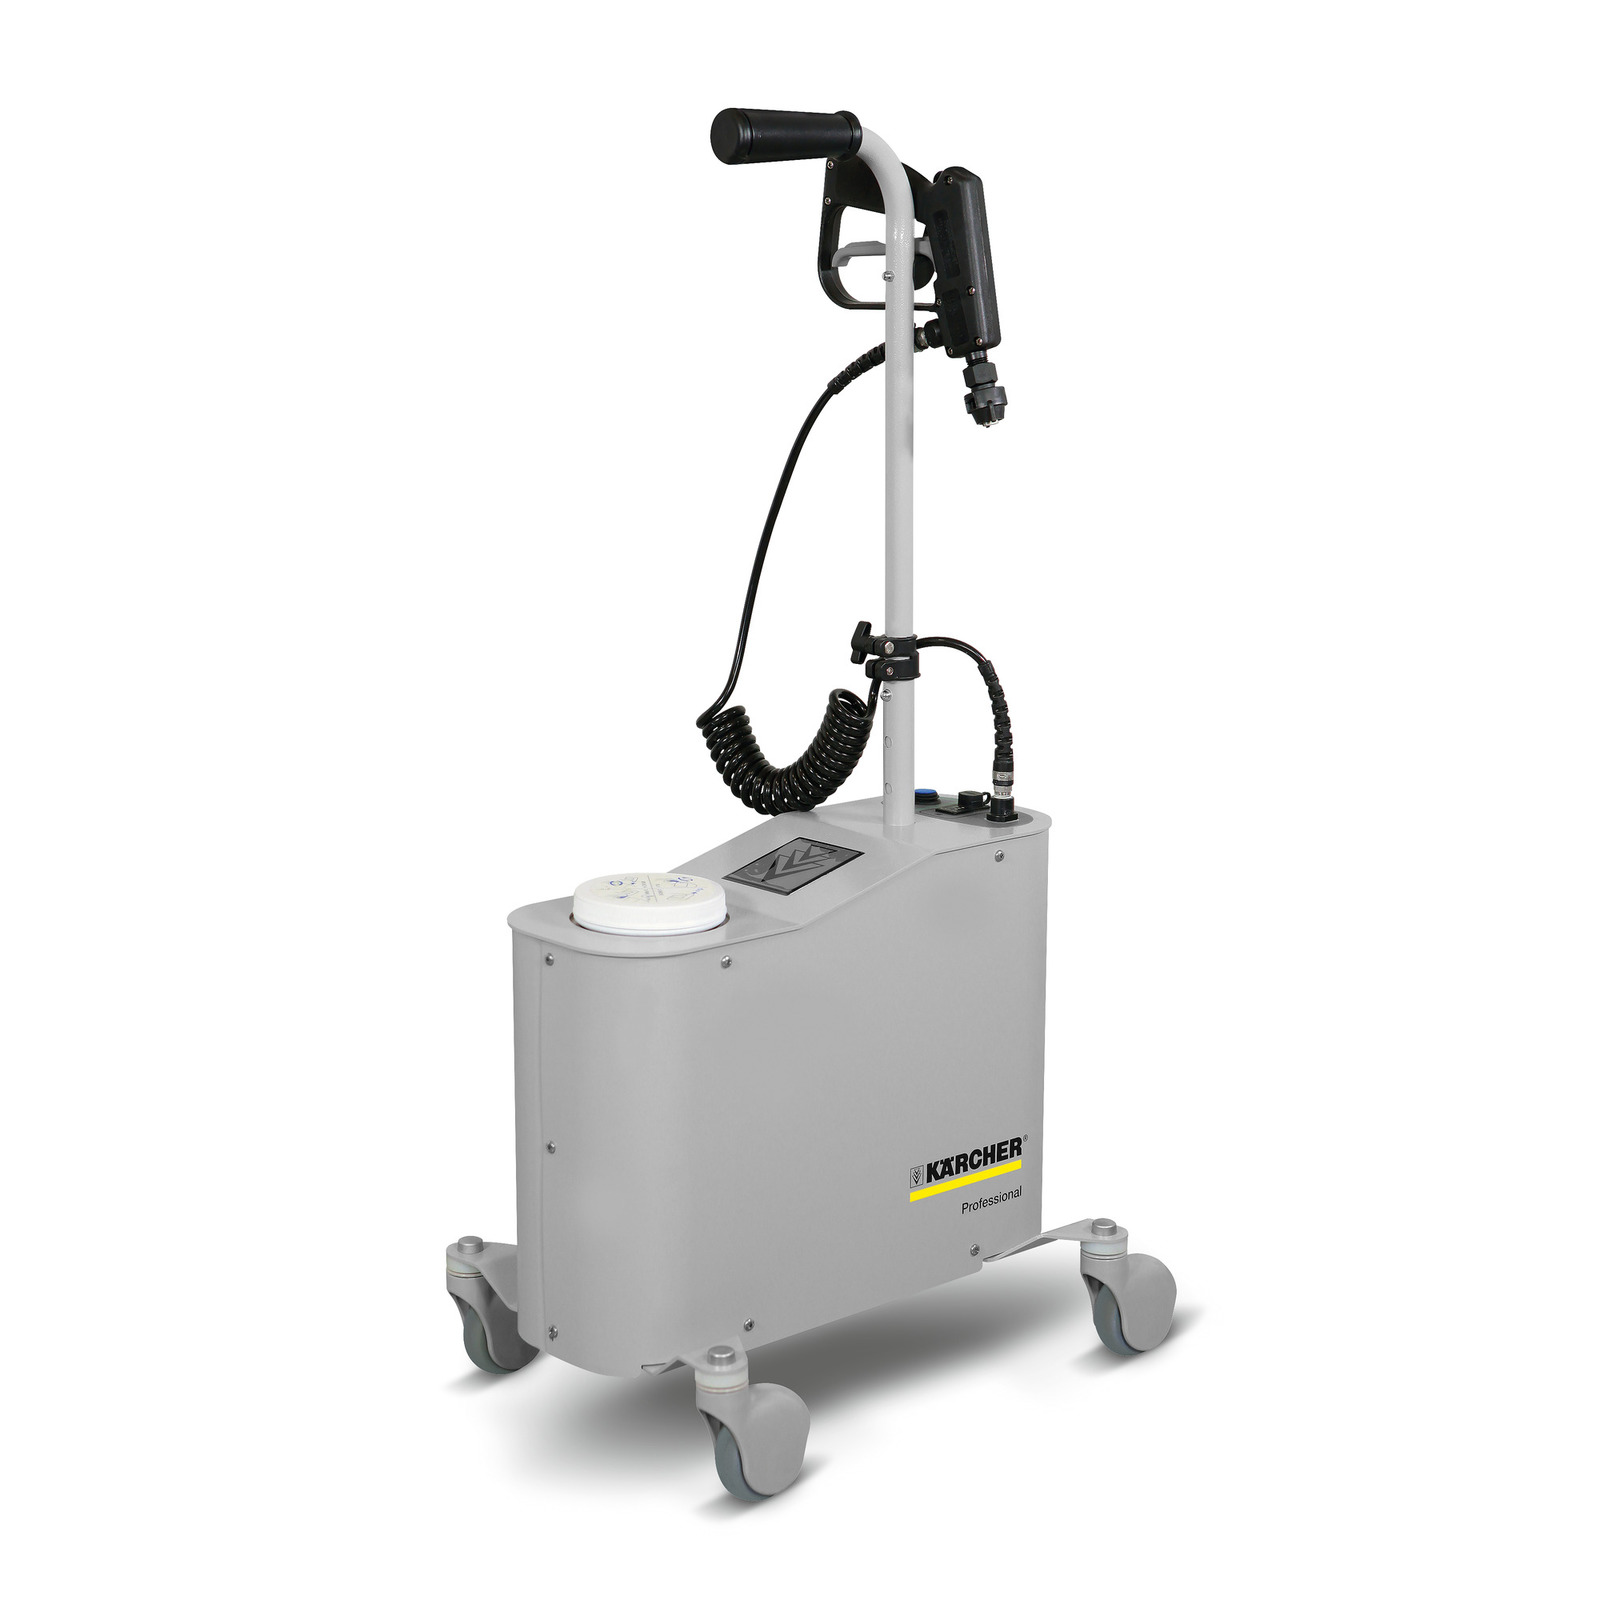 Karcher 1.007-082.0 TD12V120 PS 4/7 BP Mister Disinfection Battery Sprayer 8 Hour Charge Pre-Orders Only 1.007-084.0